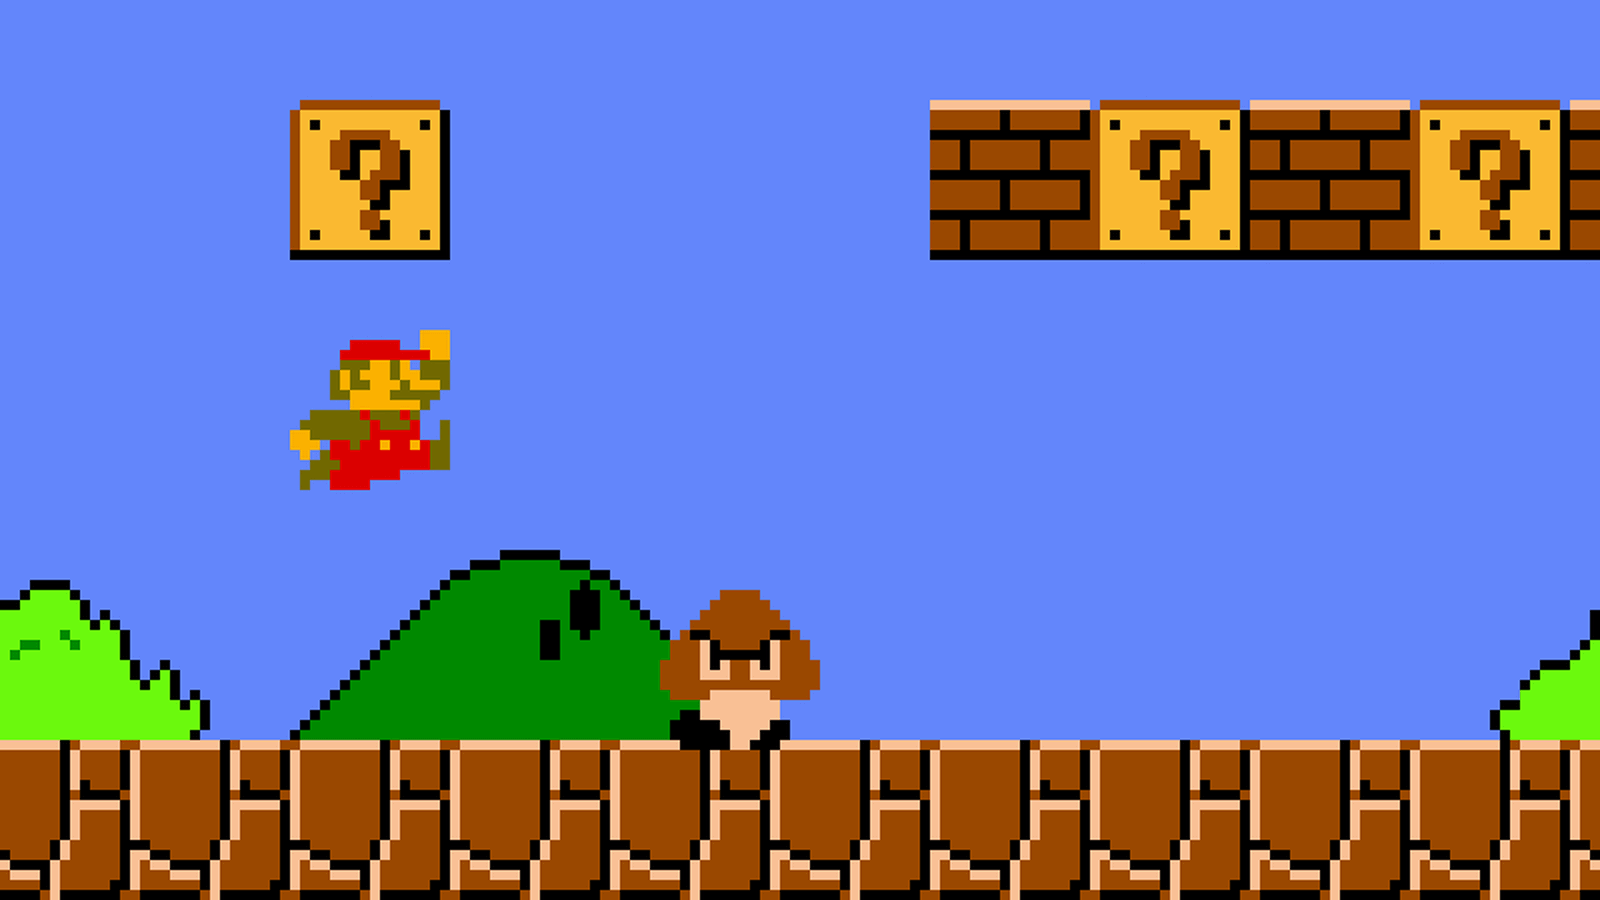 guy completes super mario bros run in the most boring way possible